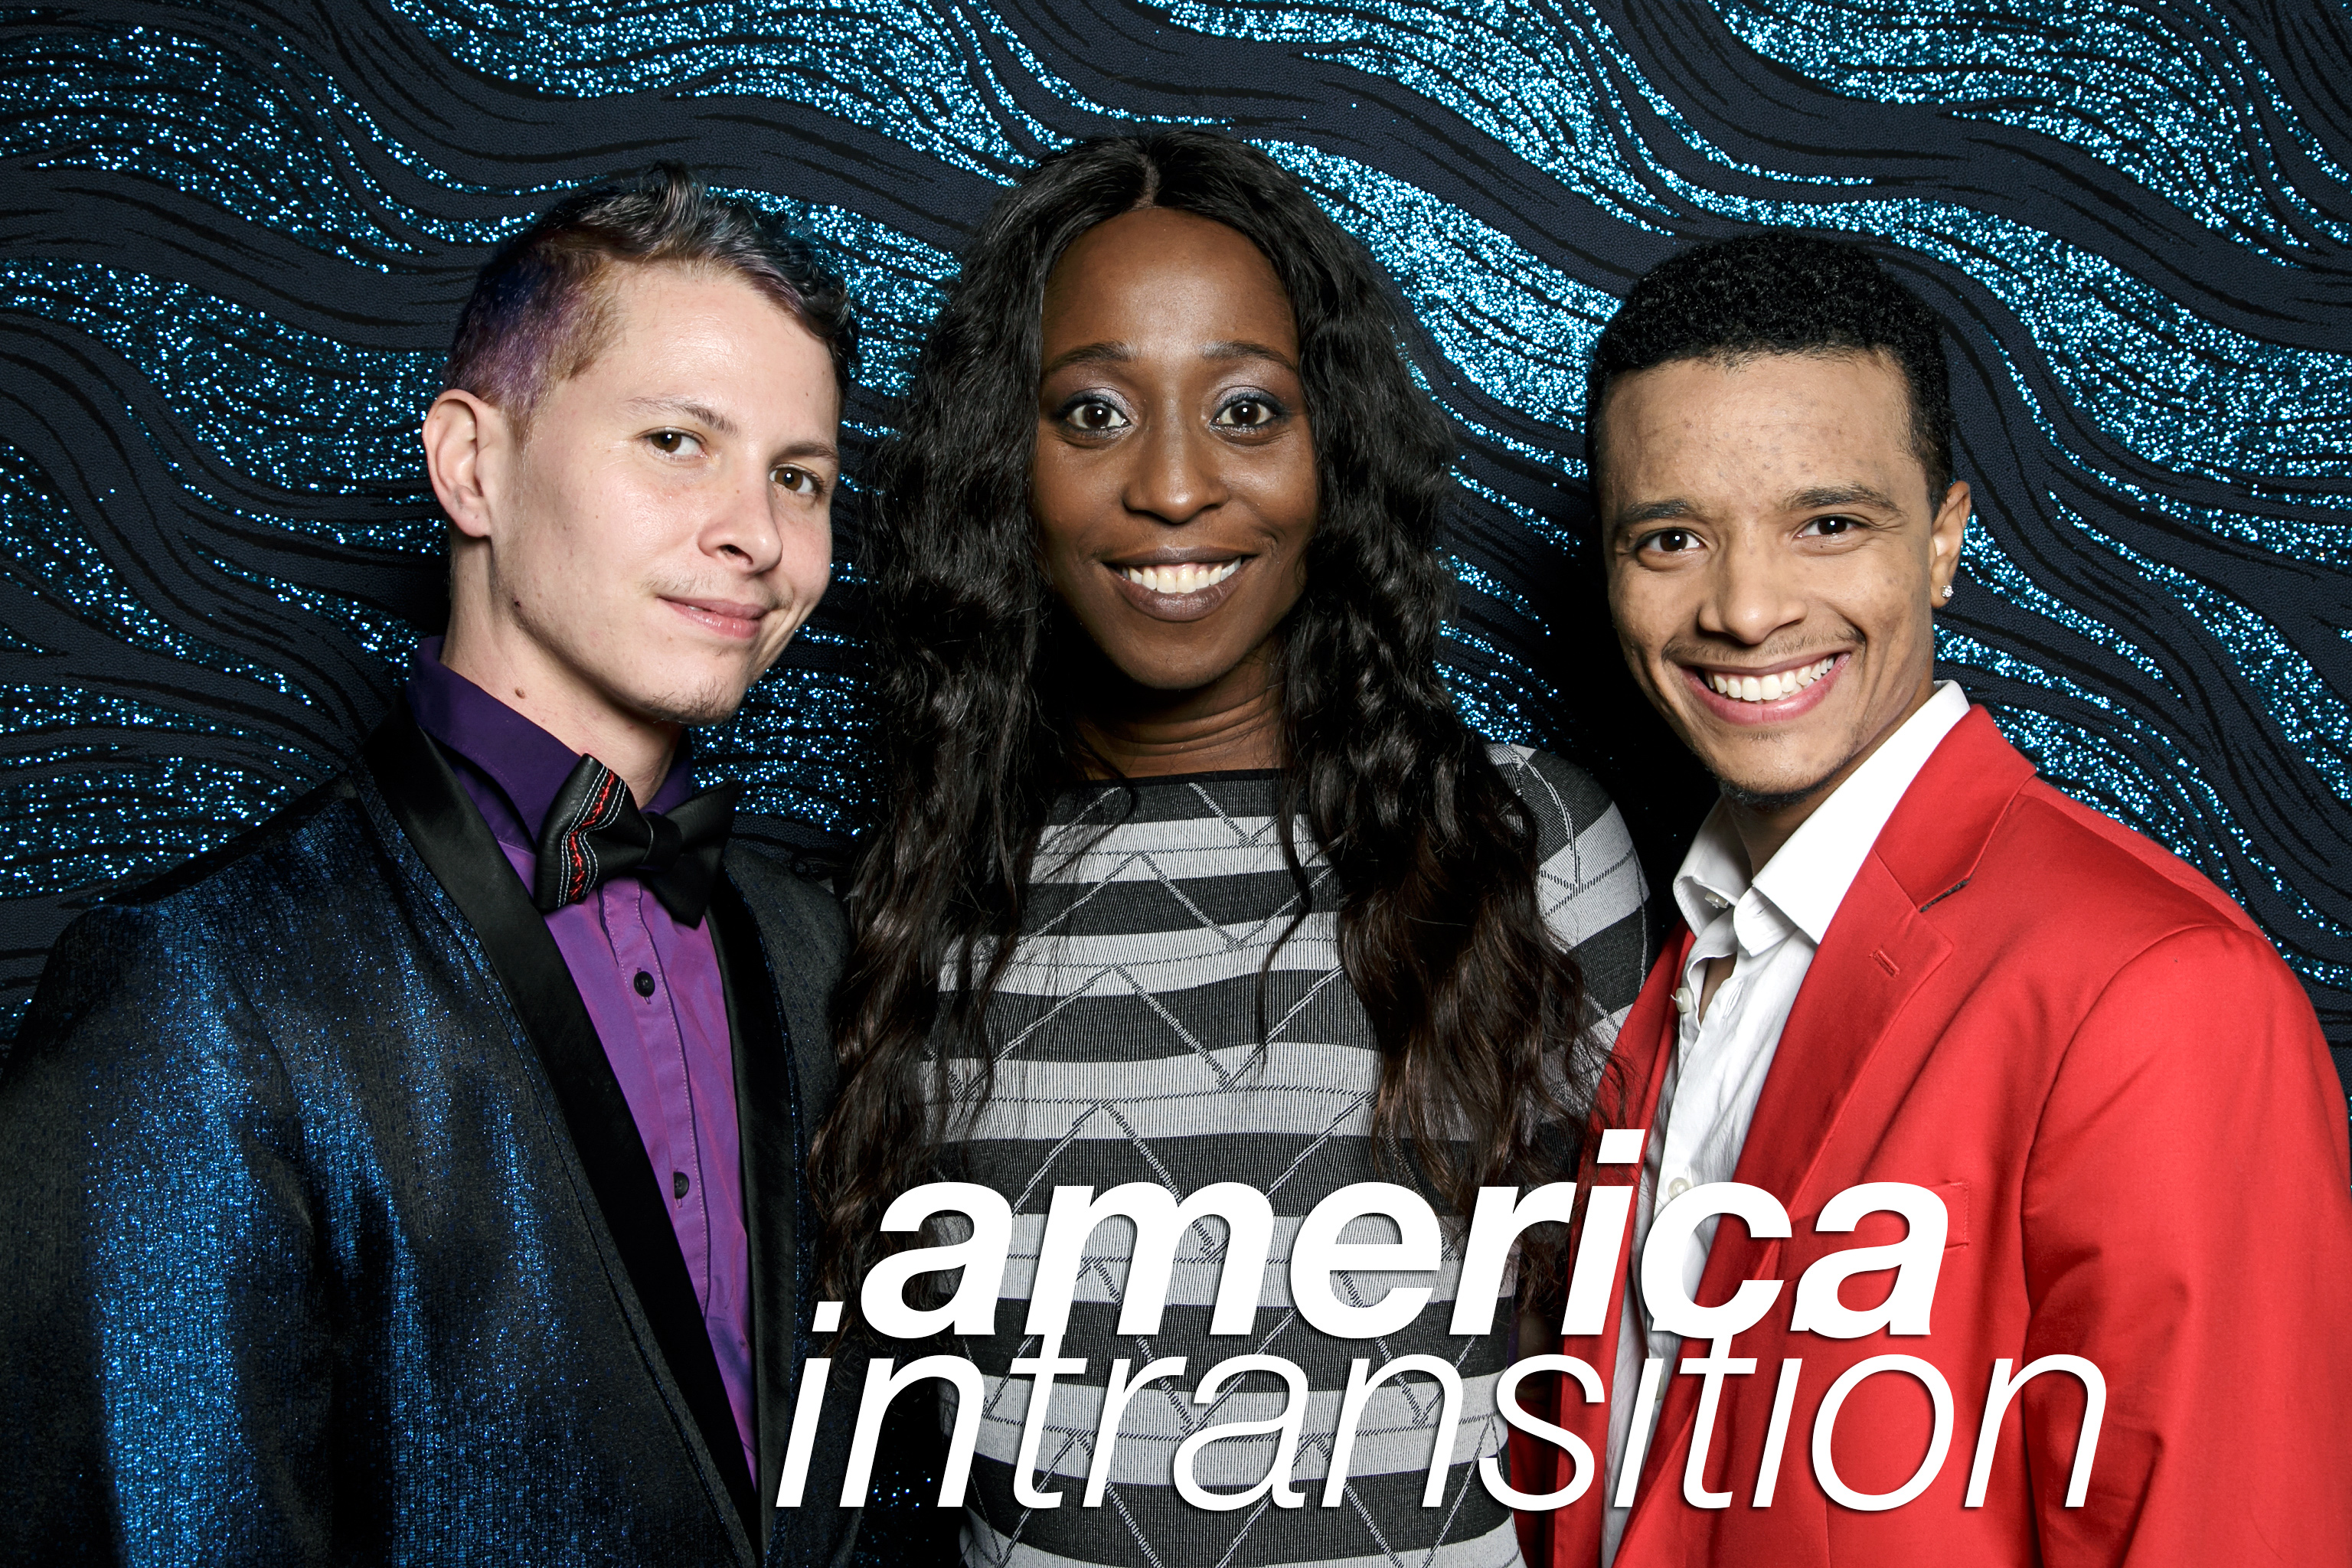 photo booth portraits from the america in transition launch, december 2016